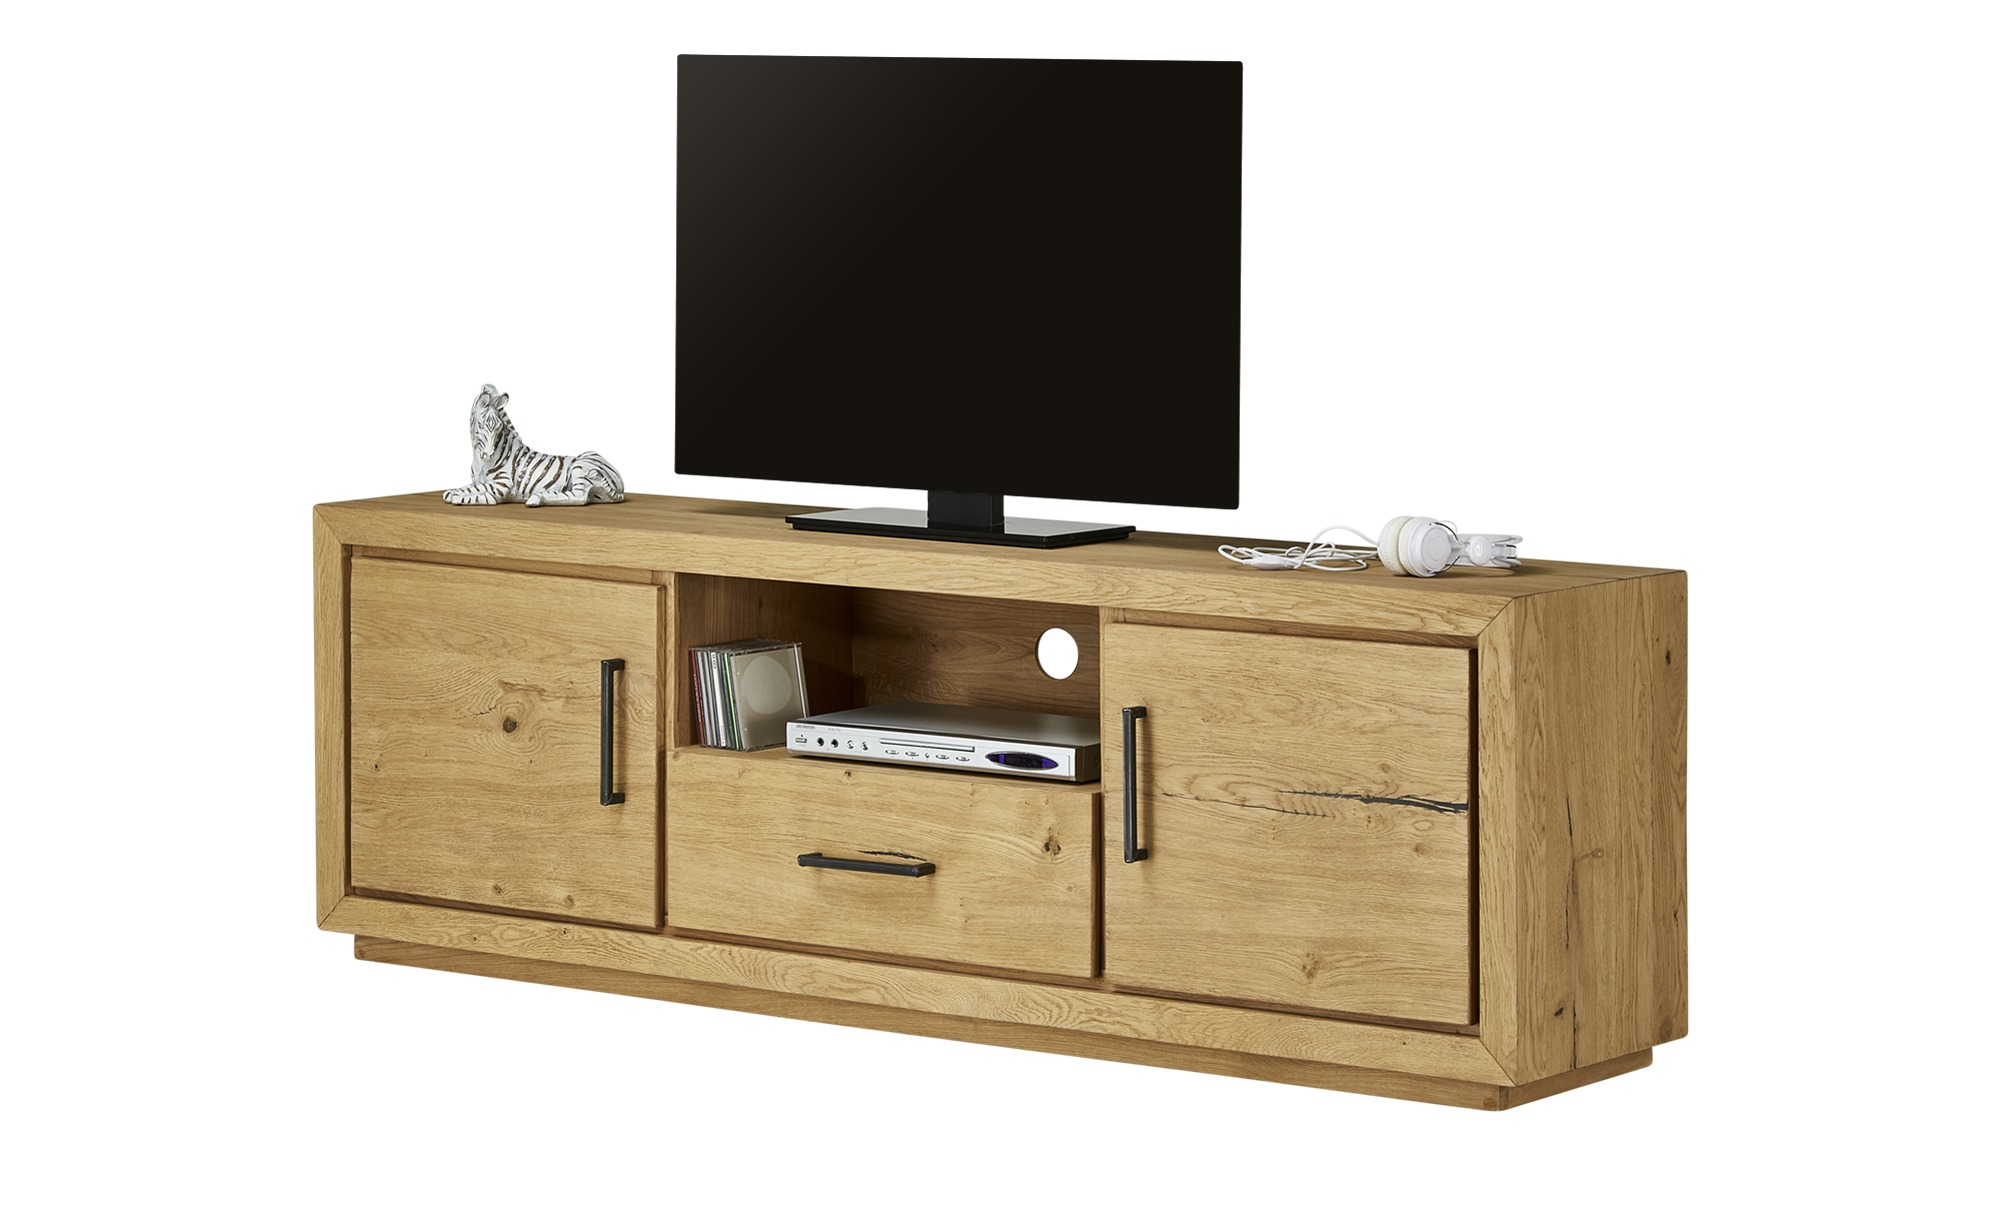 Gray & Jones TV-Lowboard  Black Coast ¦ holzfarben ¦ Maße (cm): B: 180 H: 60 T: 42 TV- & Media Möbel > TV-Racks - Höffner